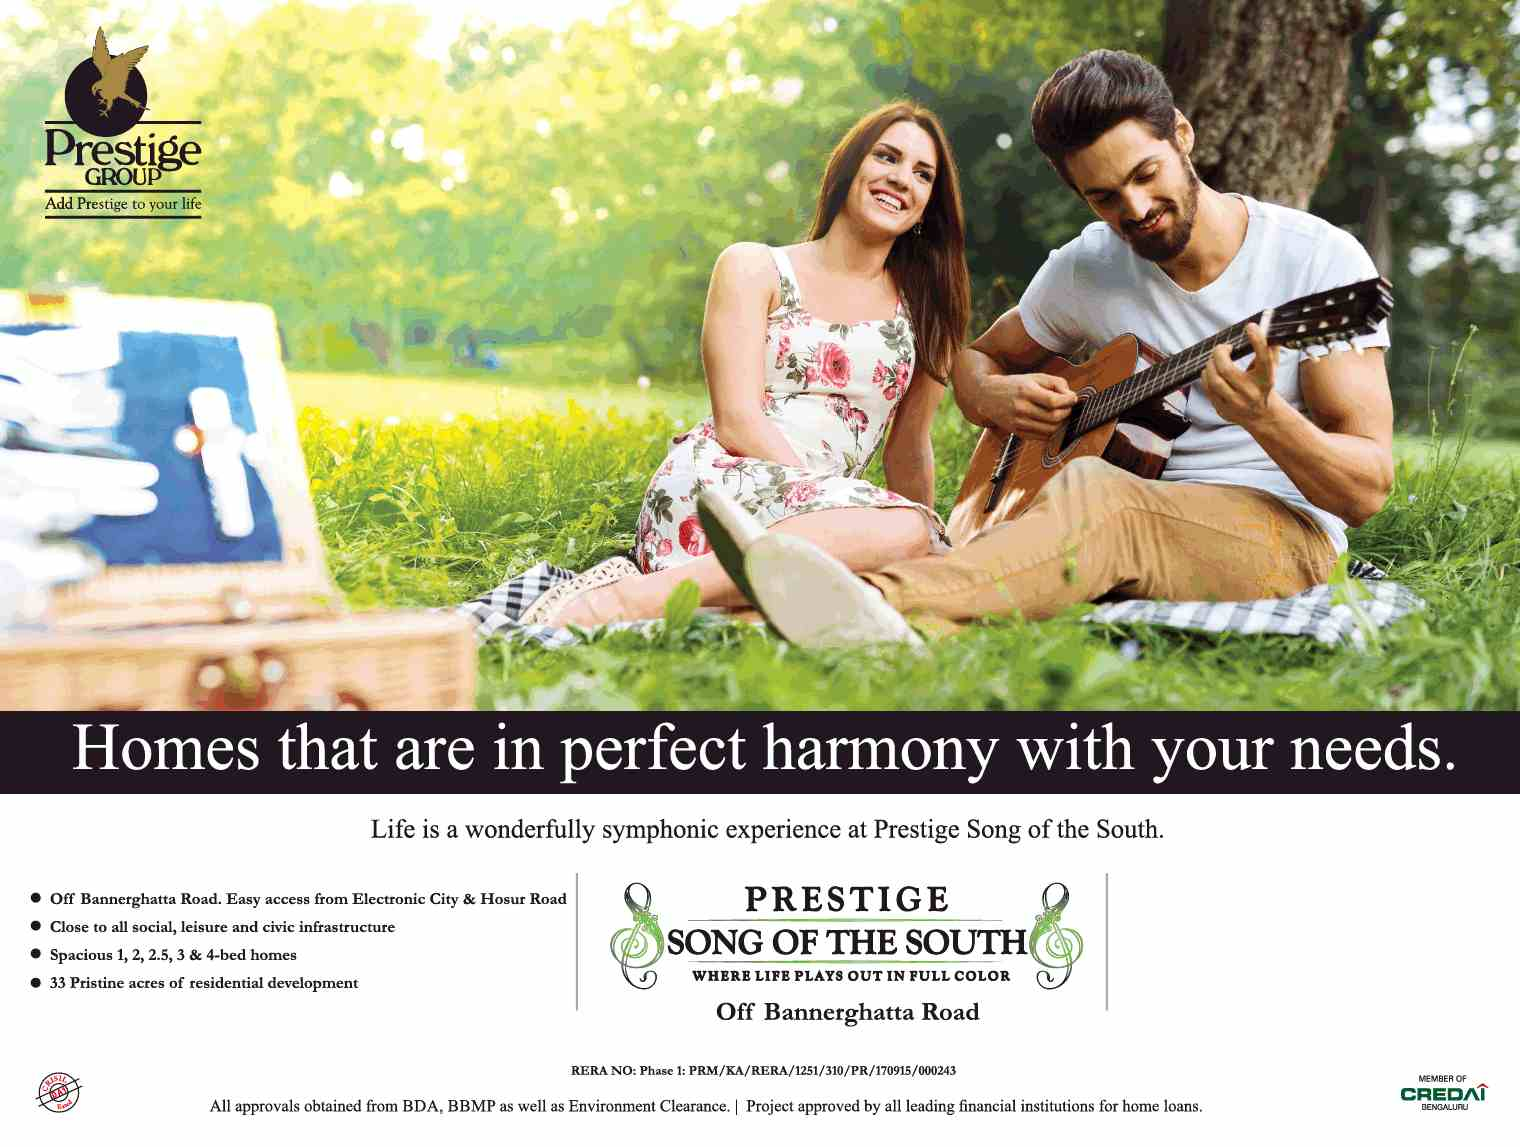 Book home that is in perfect harmony with your needs at Prestige Song Of The South Bangalore